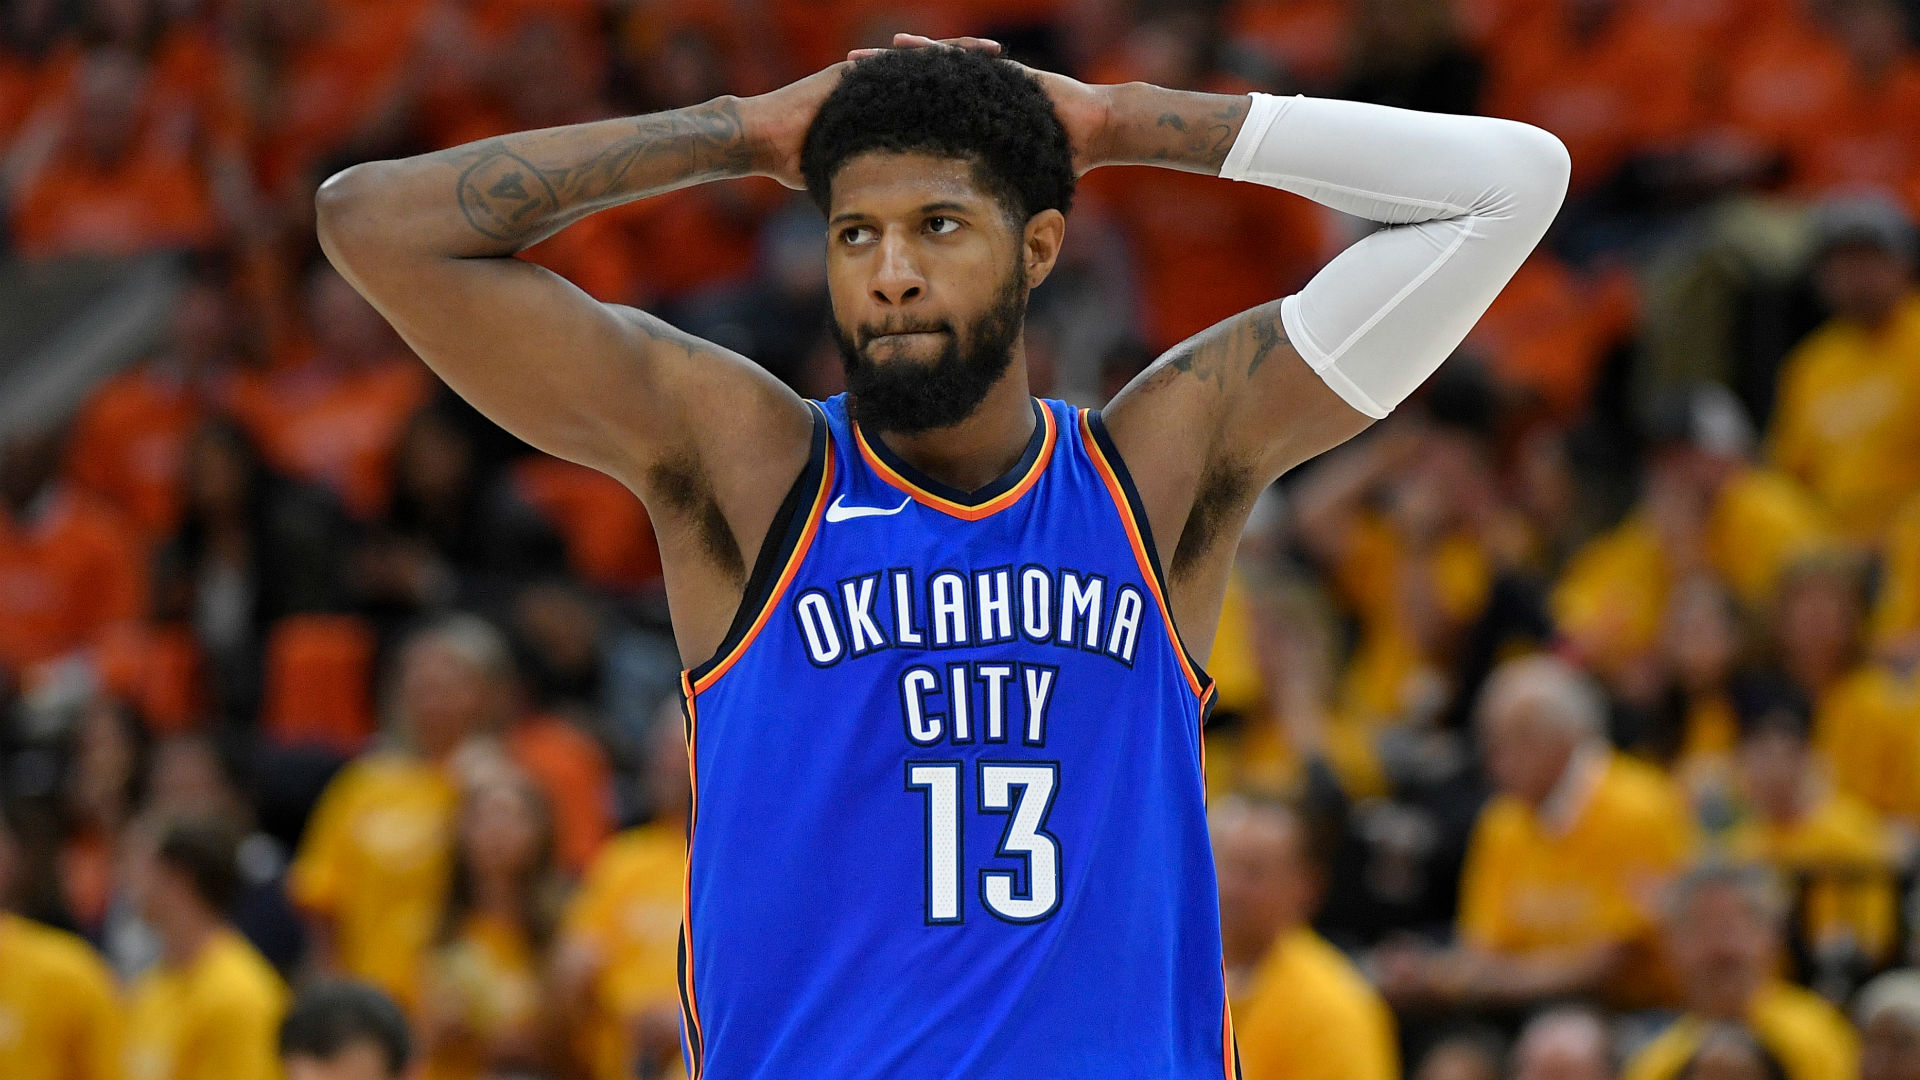 Paul George Is 'Gone' After Season With Thunder (Ryen Russillo Show)